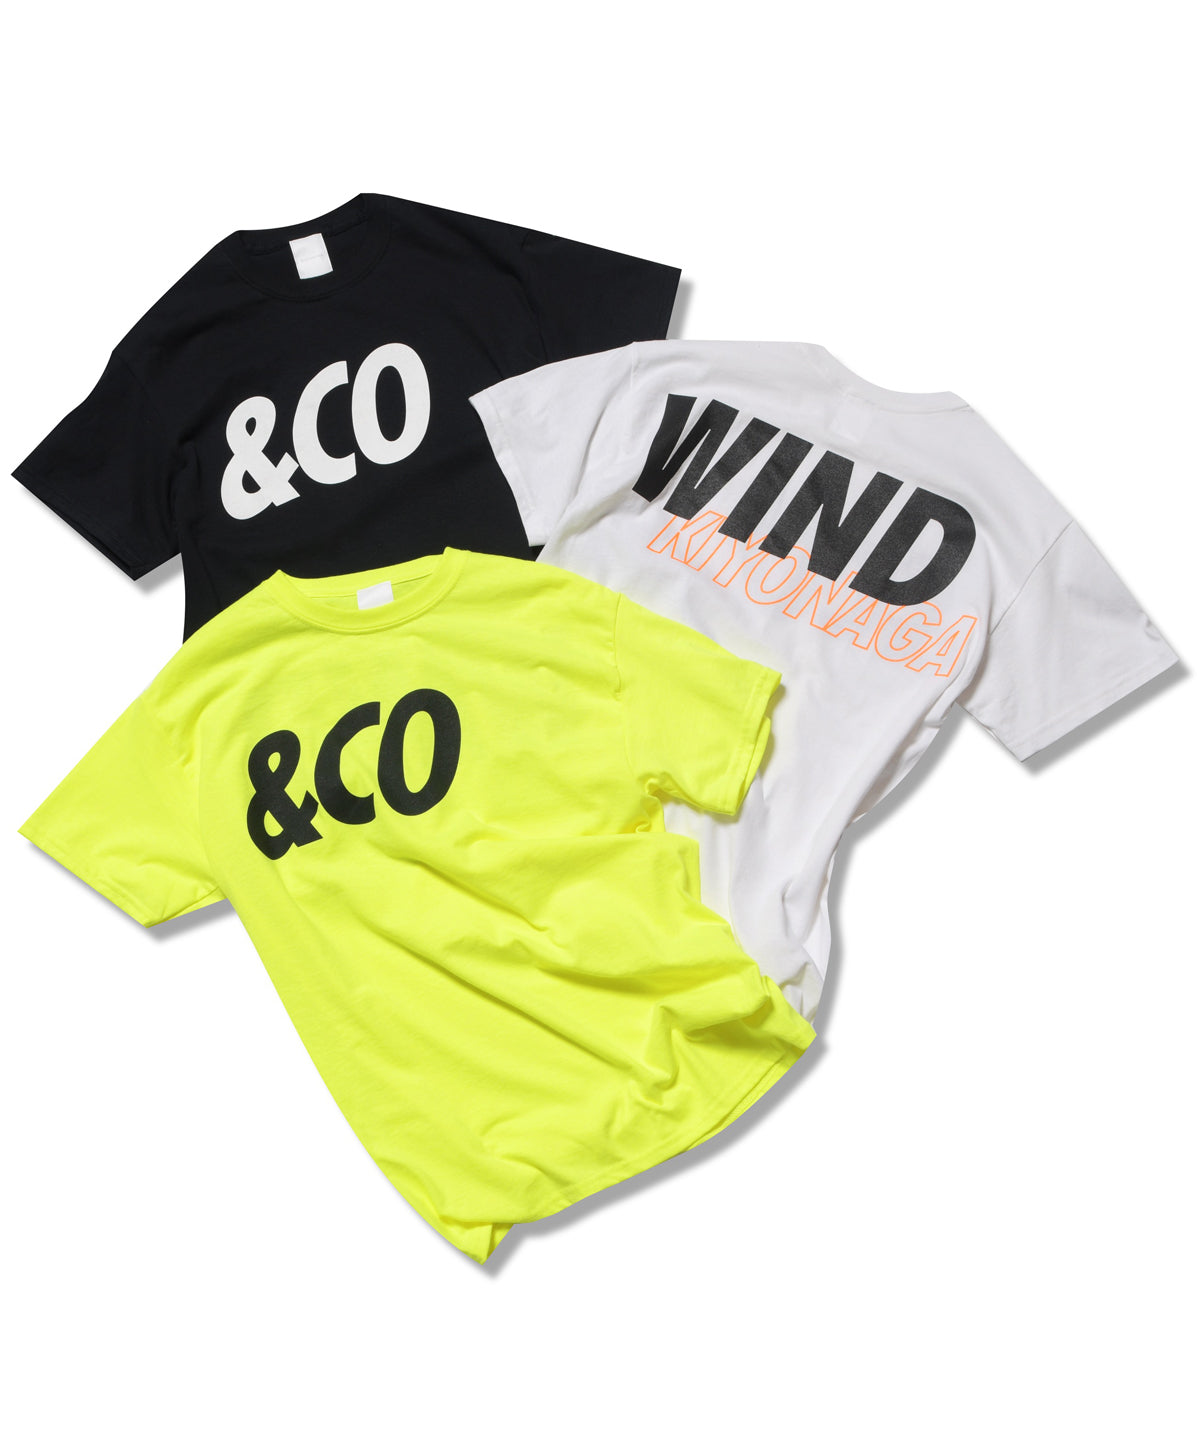 &CO WIND KIYONAGA TEE